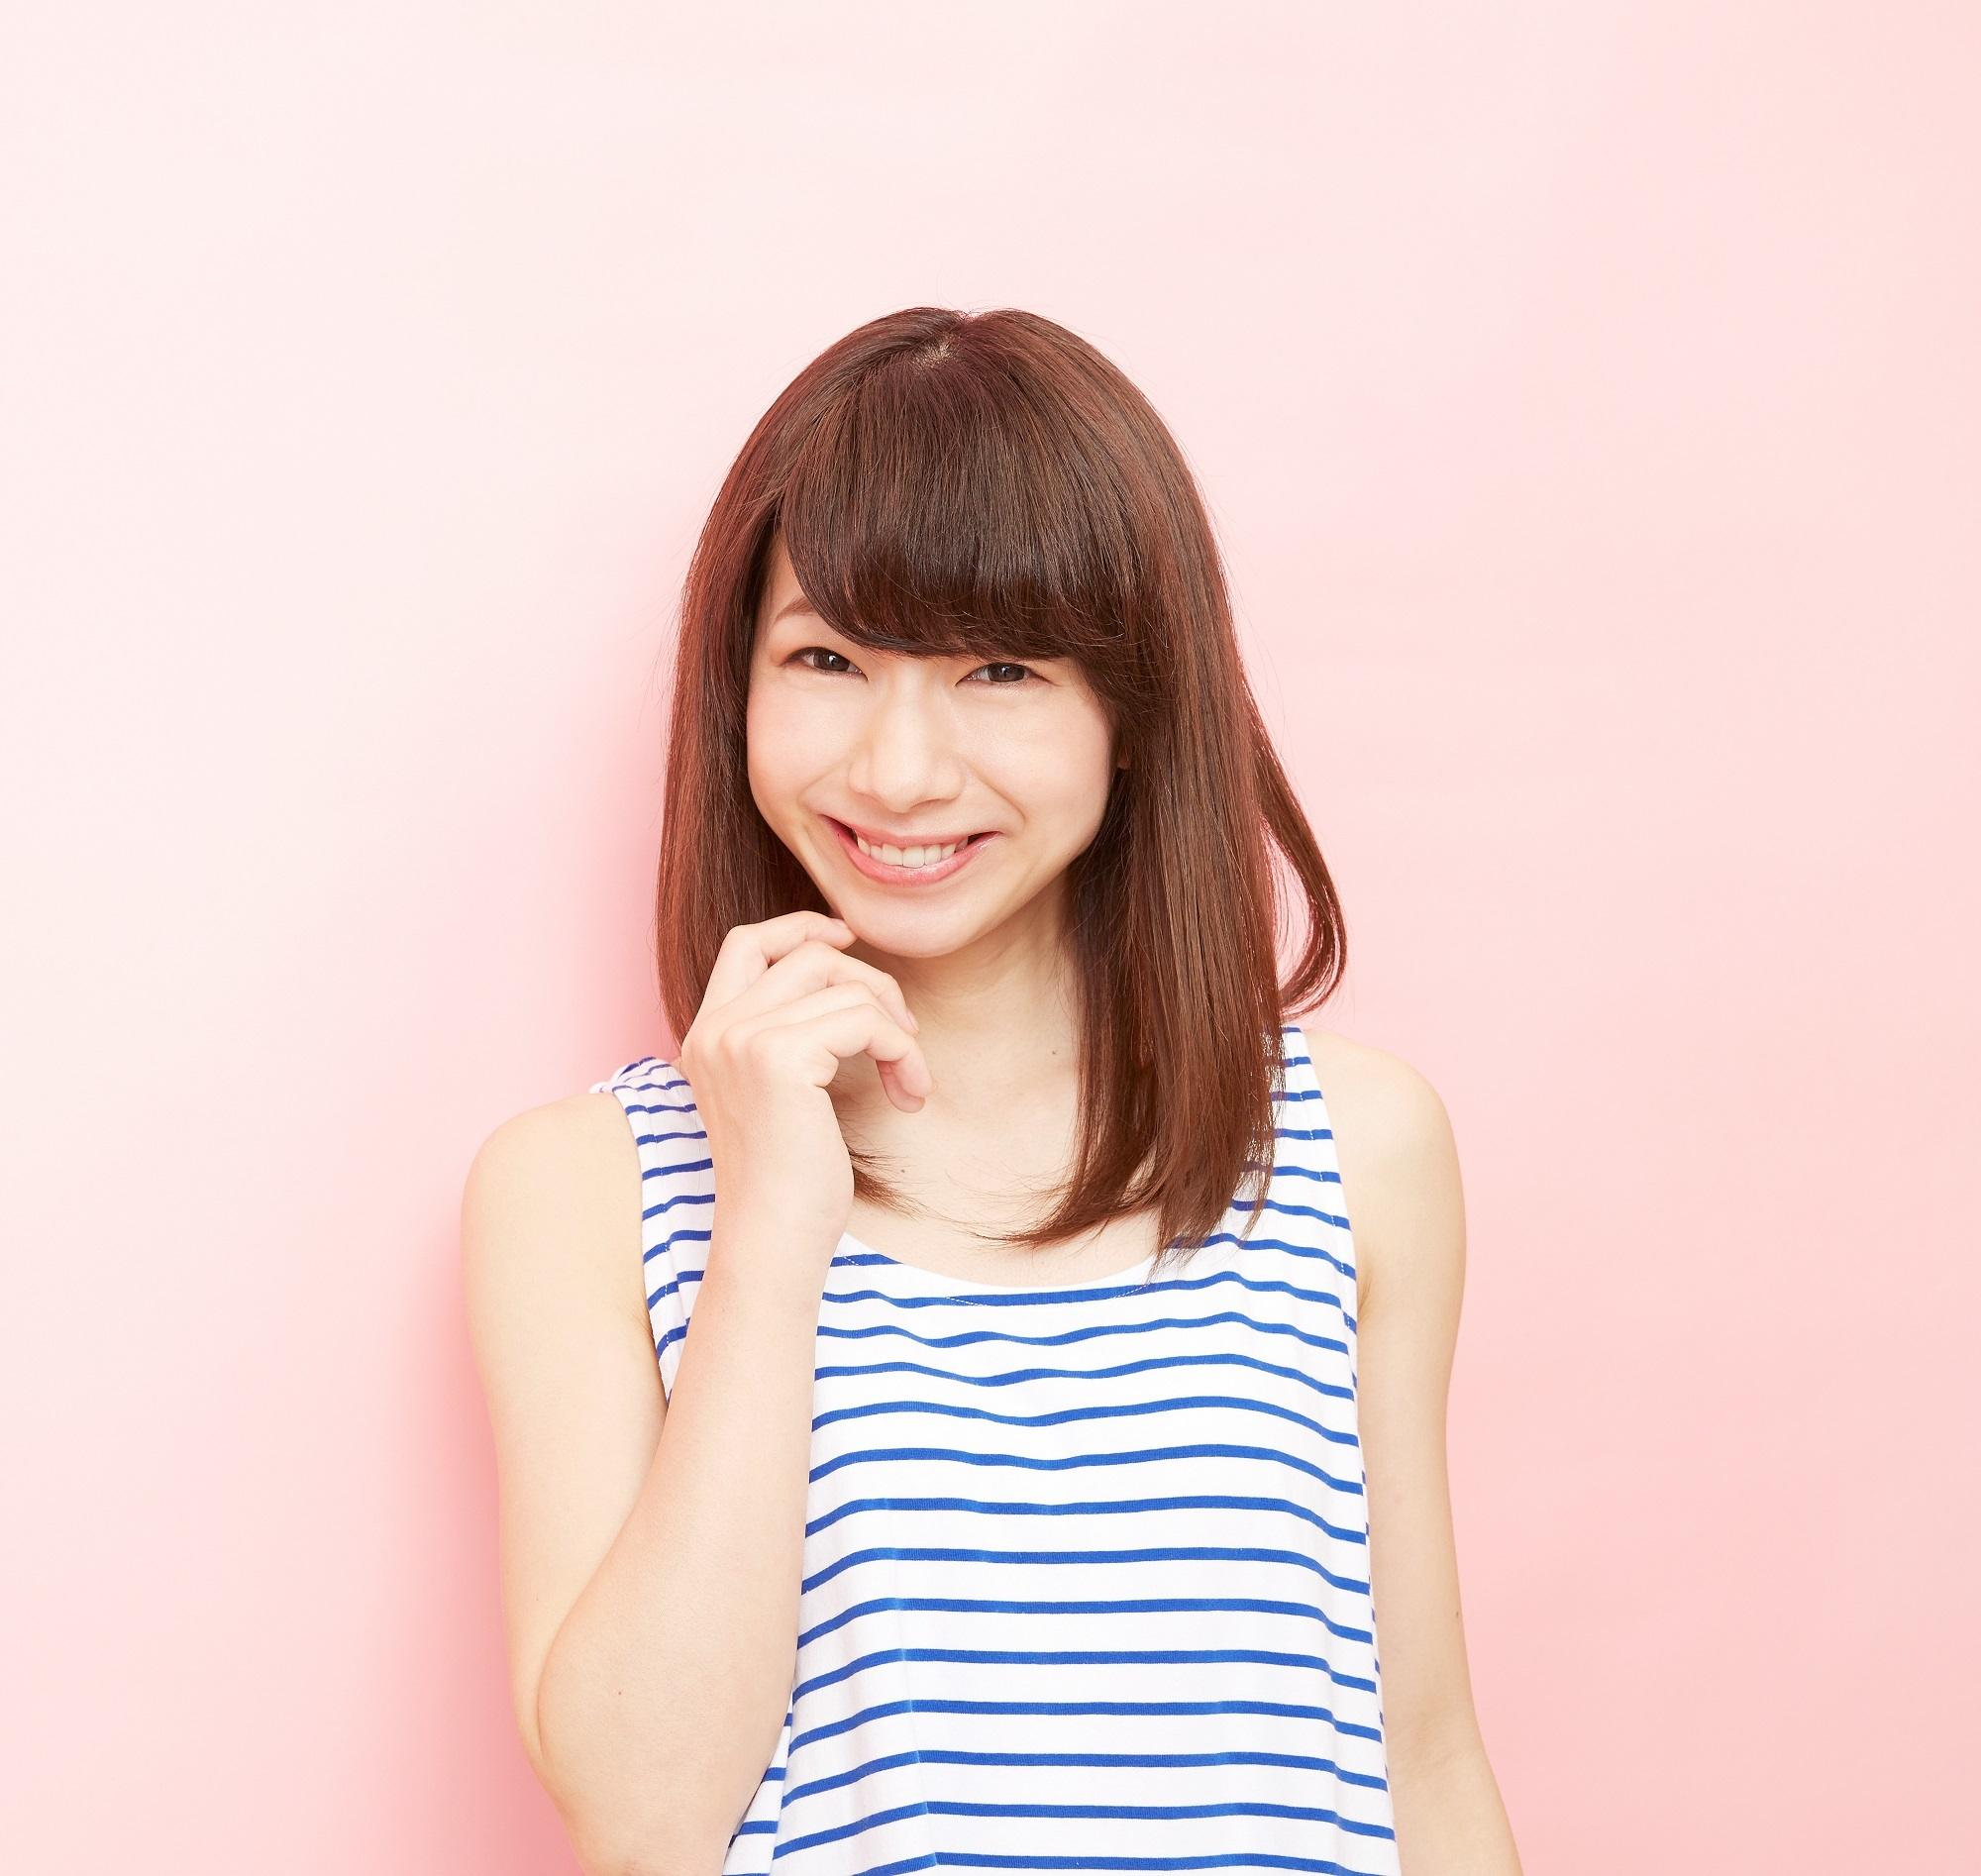 Best haircuts for long hair: Asian girl wearing a striped sleeveless shirt with shoulder-length hair with bangs standing against a pink background